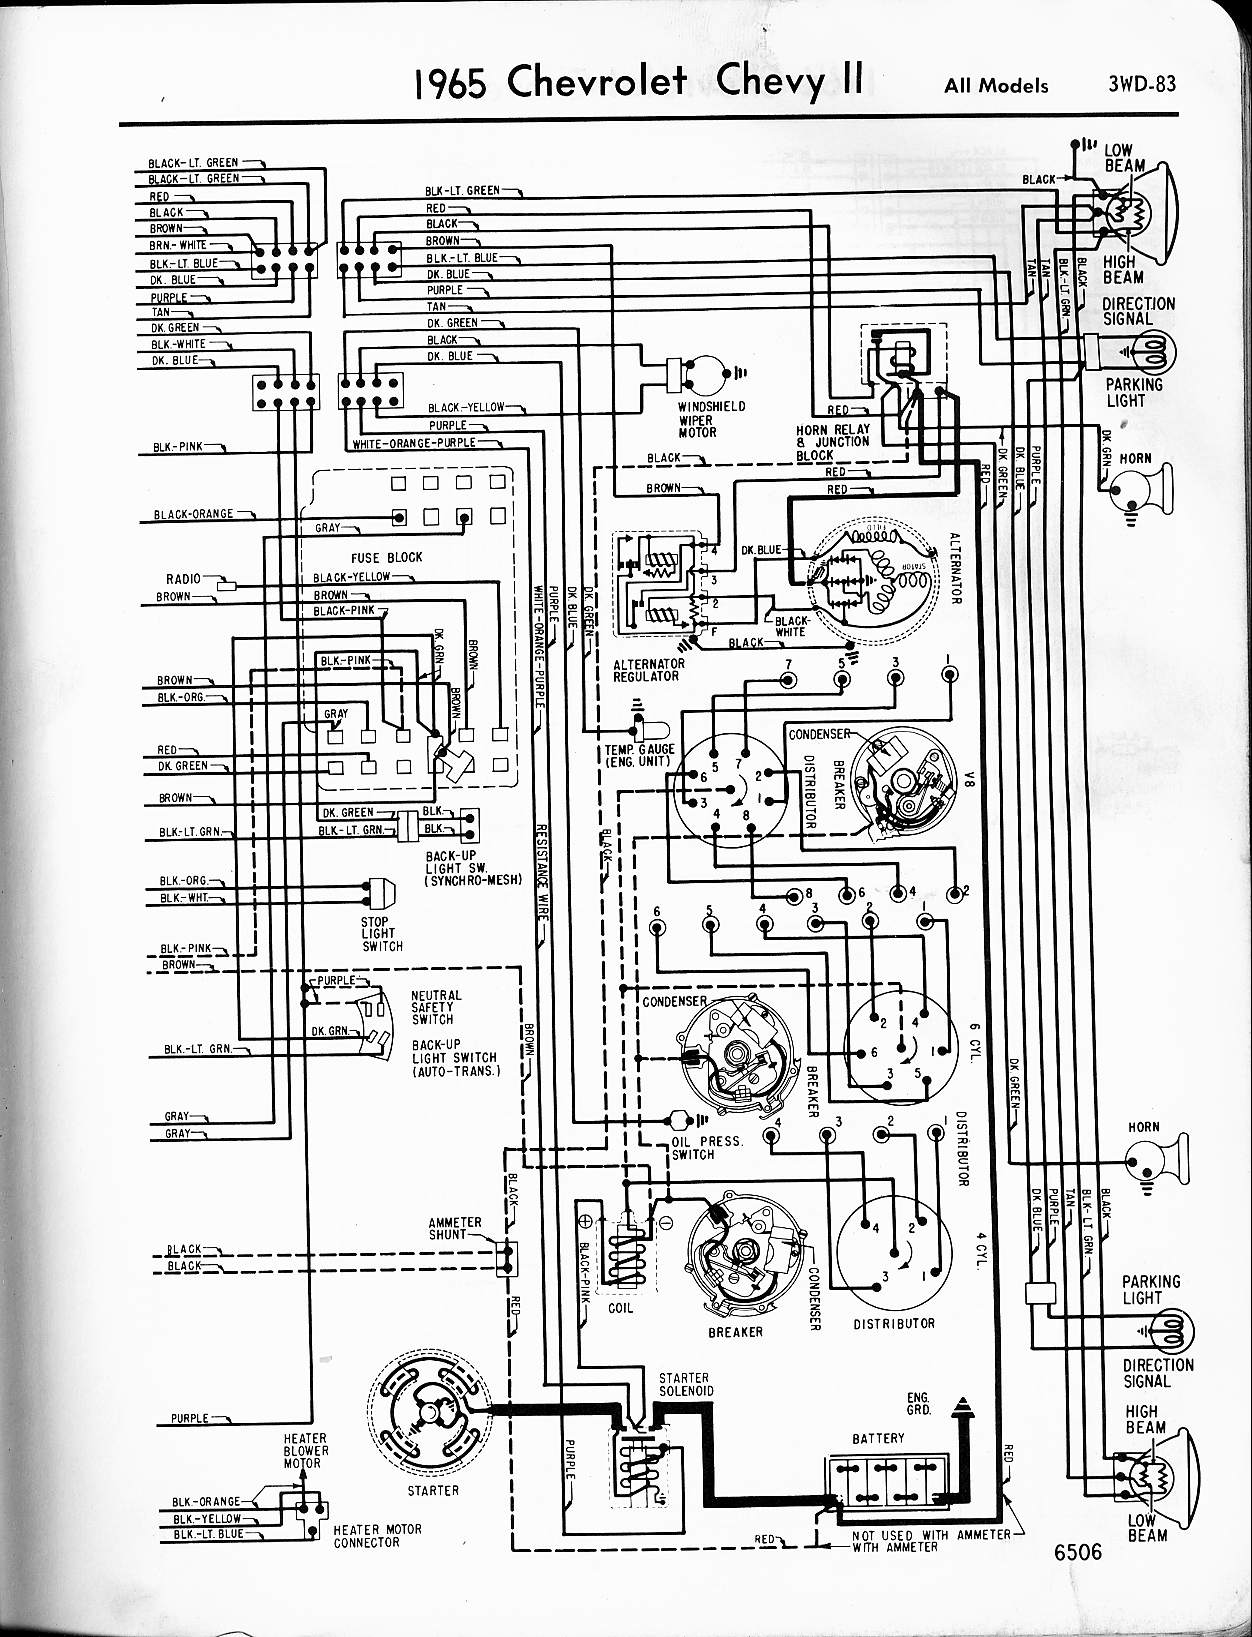 1965 Chevelle Wiring Diagram 1965 Home Wiring Diagrams – 1969 Chevelle Wiring Diagram